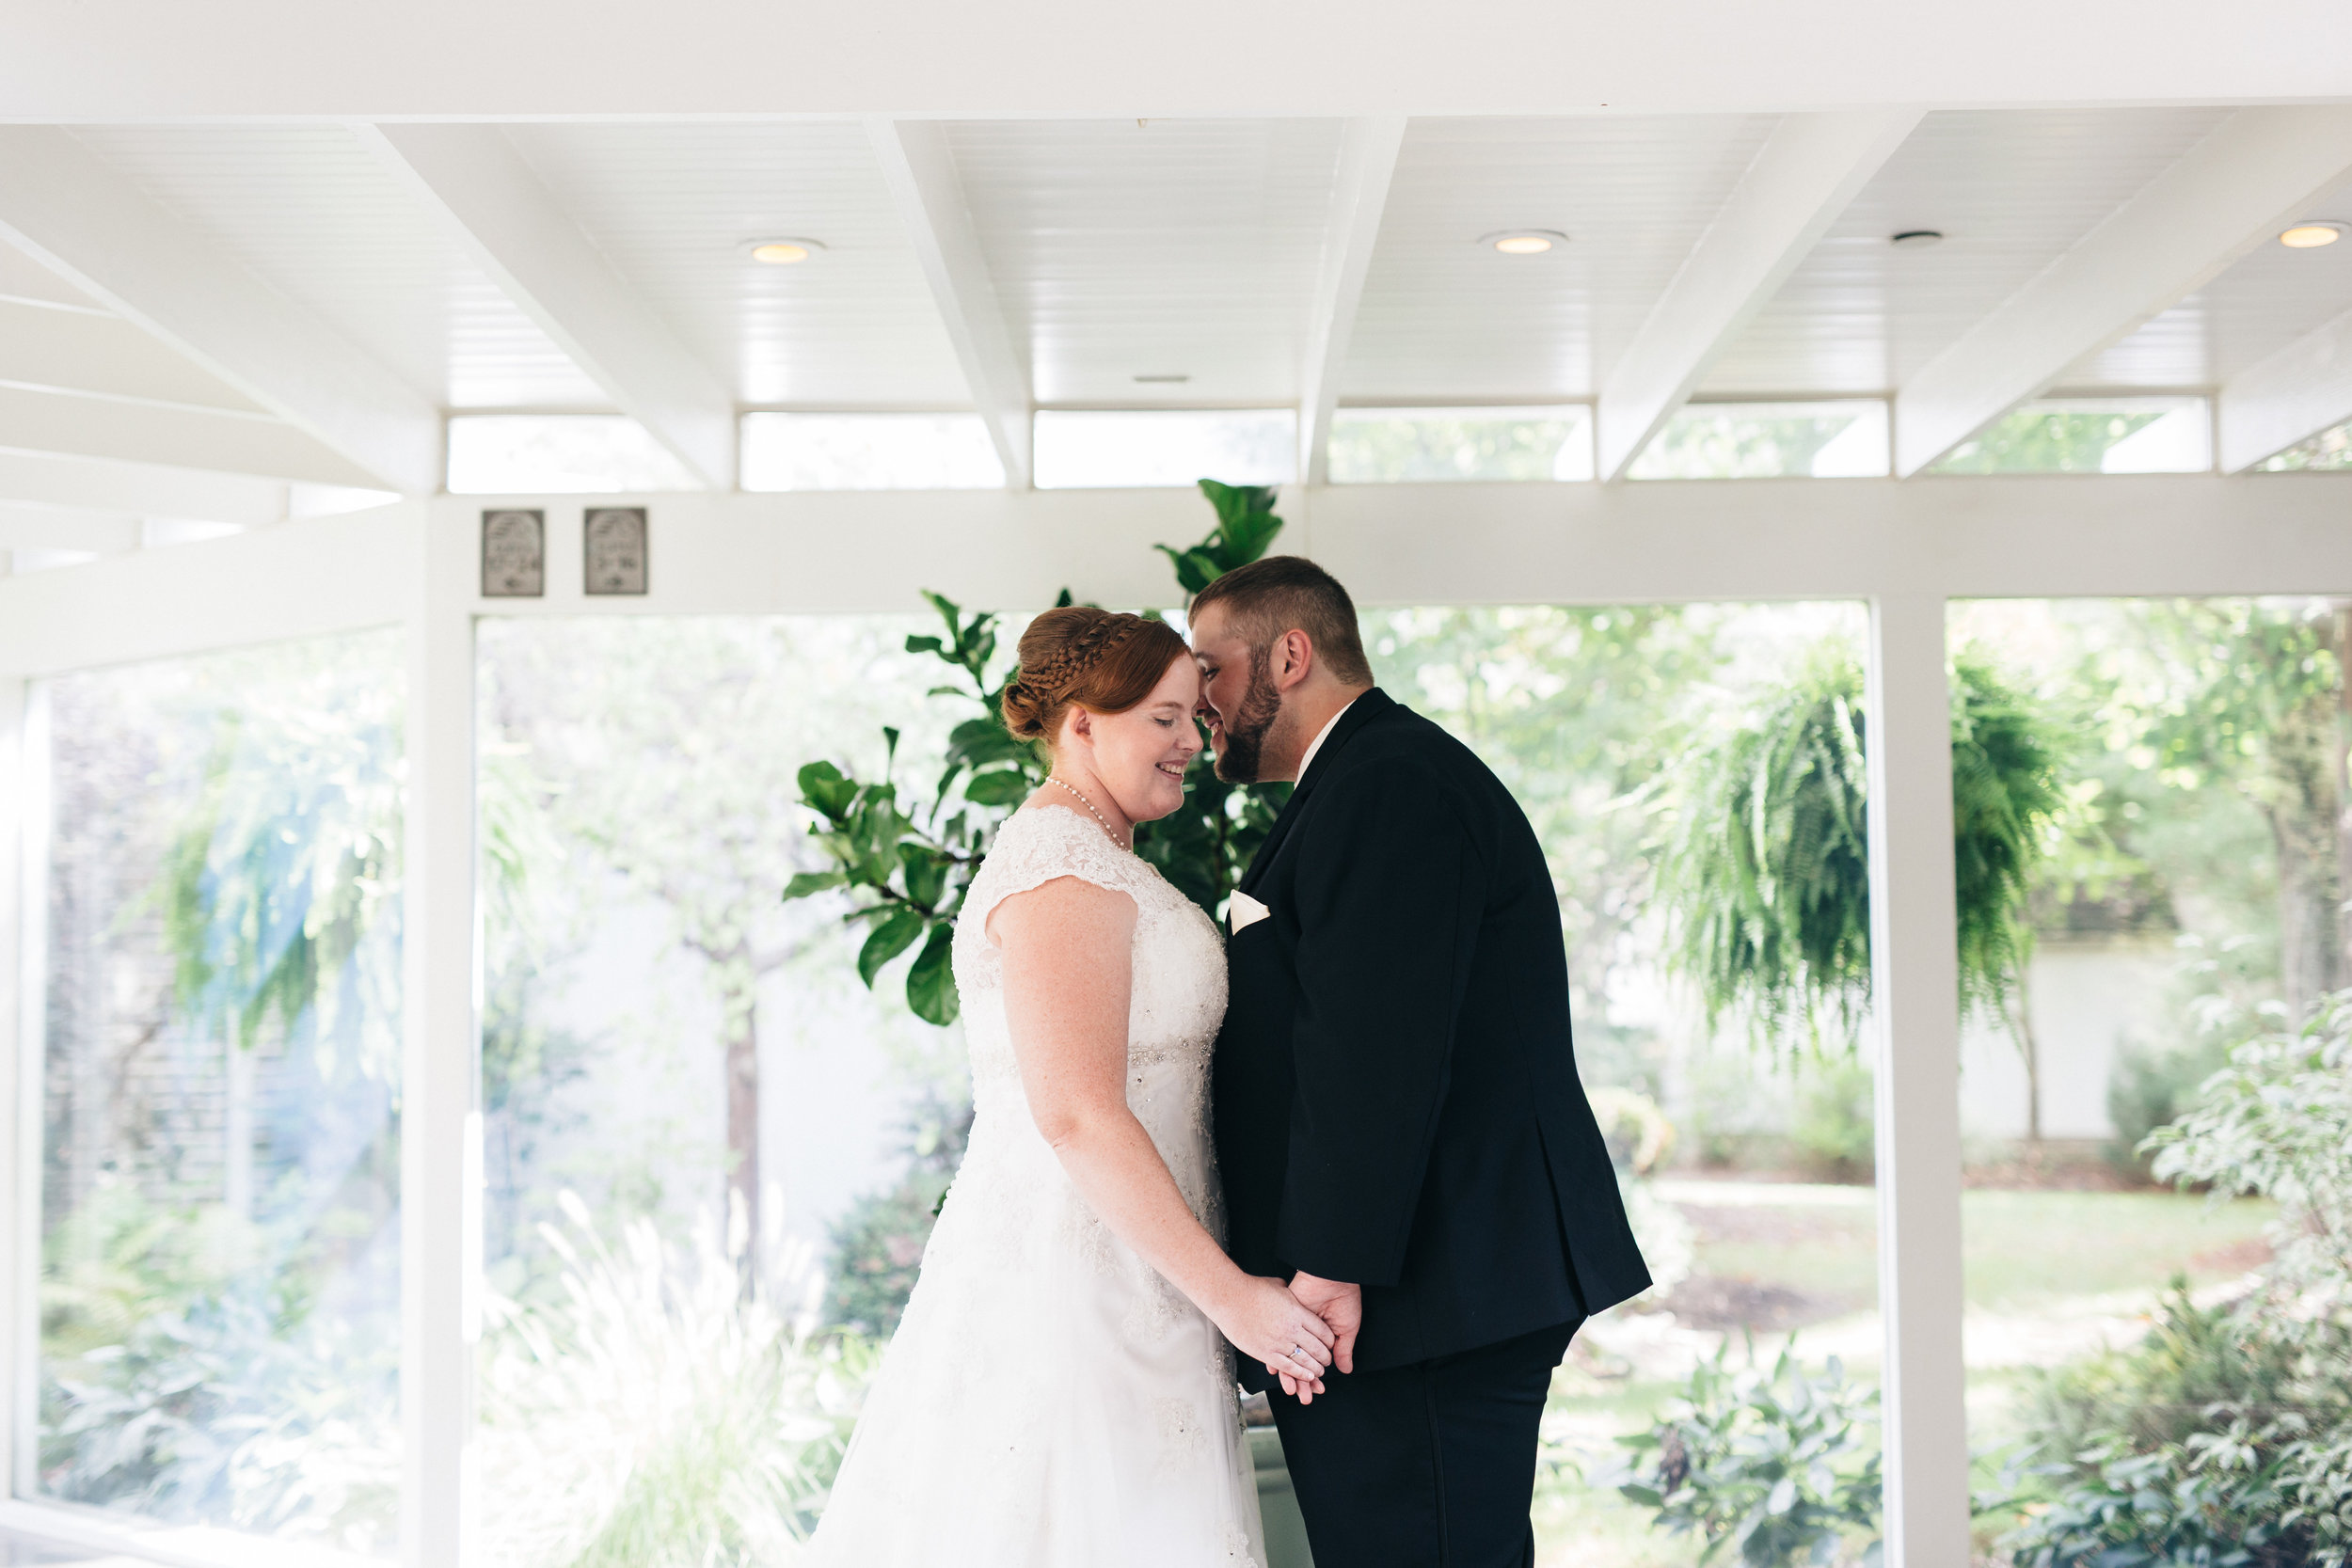 Bride and groom wedding photography at Walden Inn & Spa.